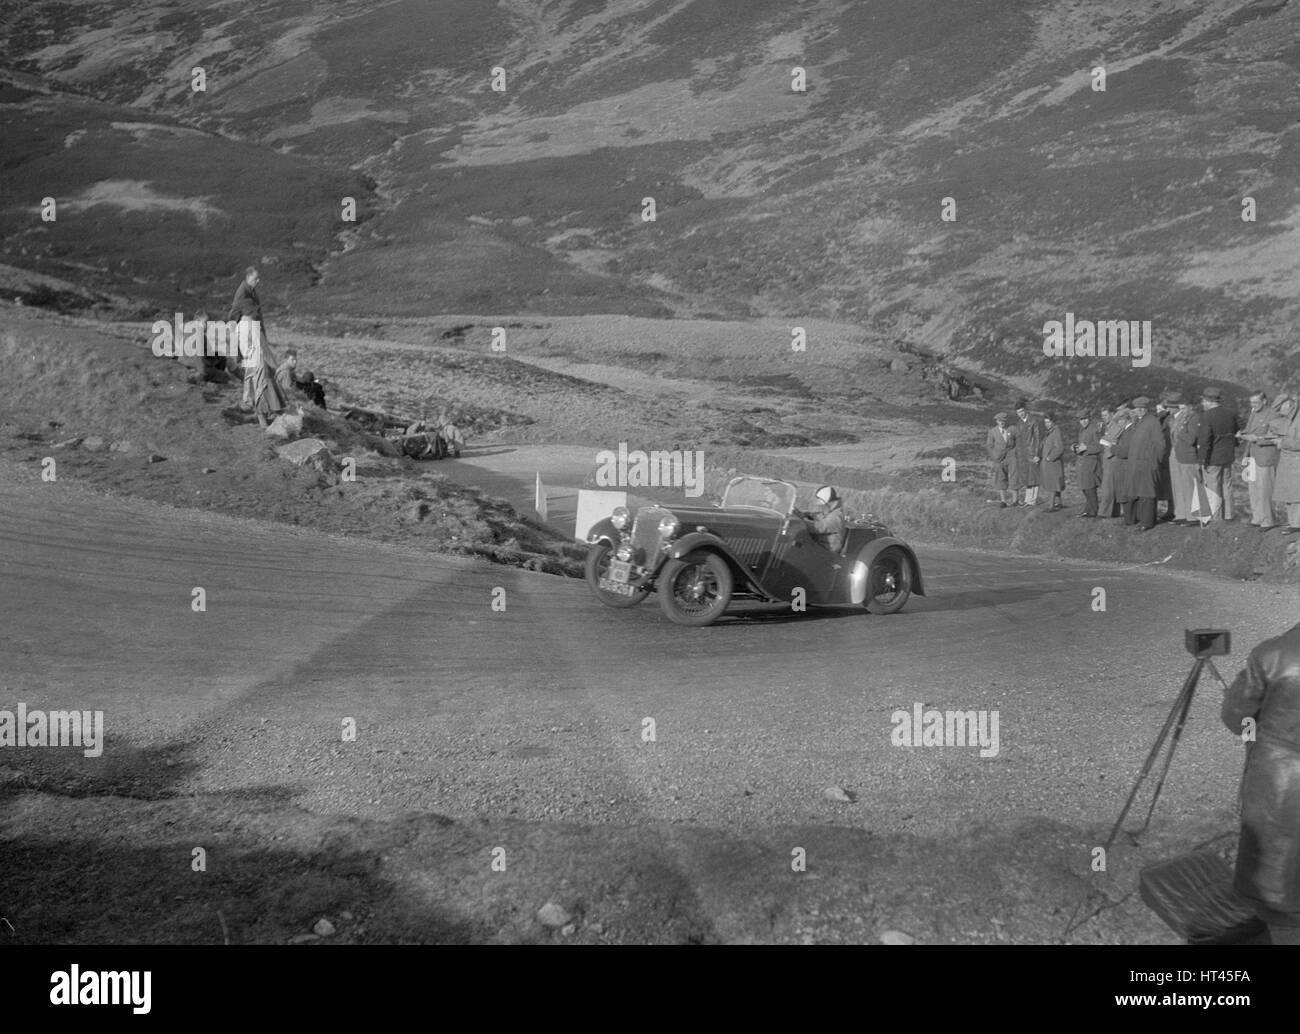 Singer Le Mans 2-seater competing in the RSAC Scottish Rally, Devil's Elbow, Glenshee, 1934. Artist: Bill Brunell. - Stock Image